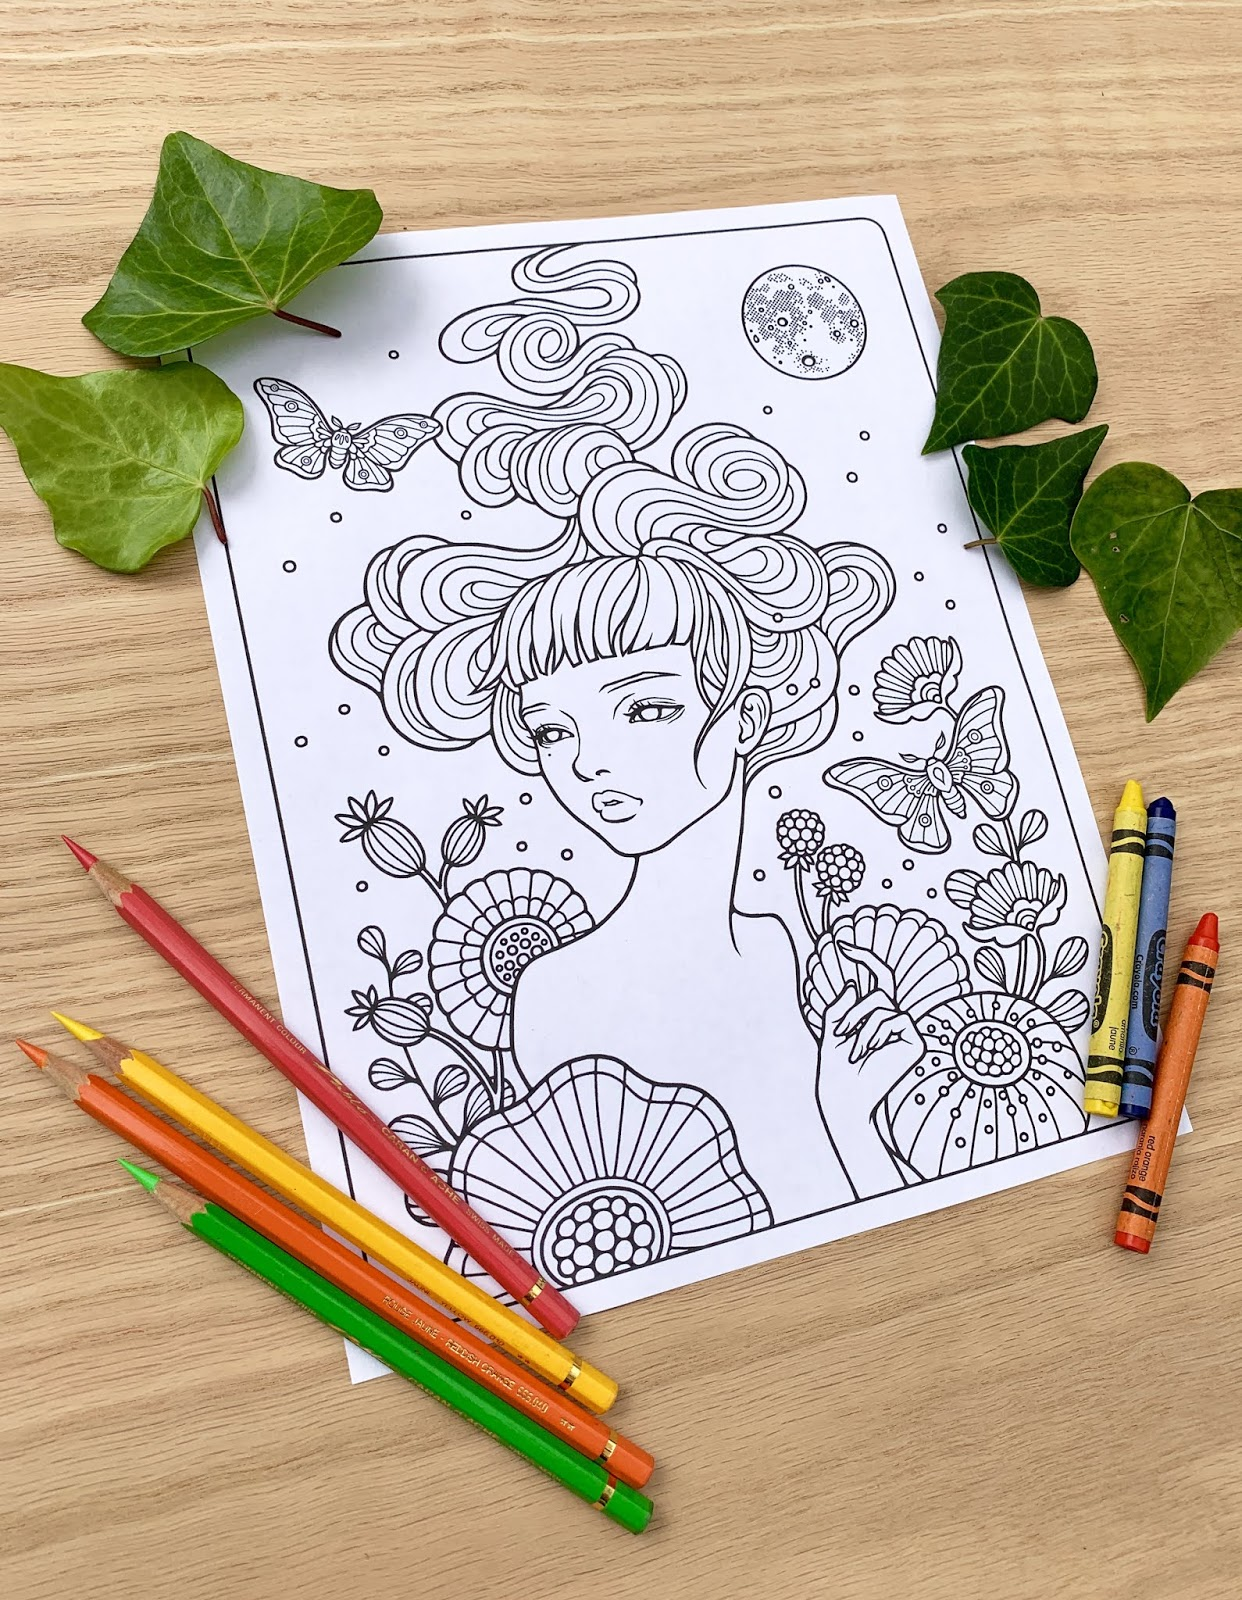 Free Coloring Pages from Archives Around the World - Art and ... | 1600x1242